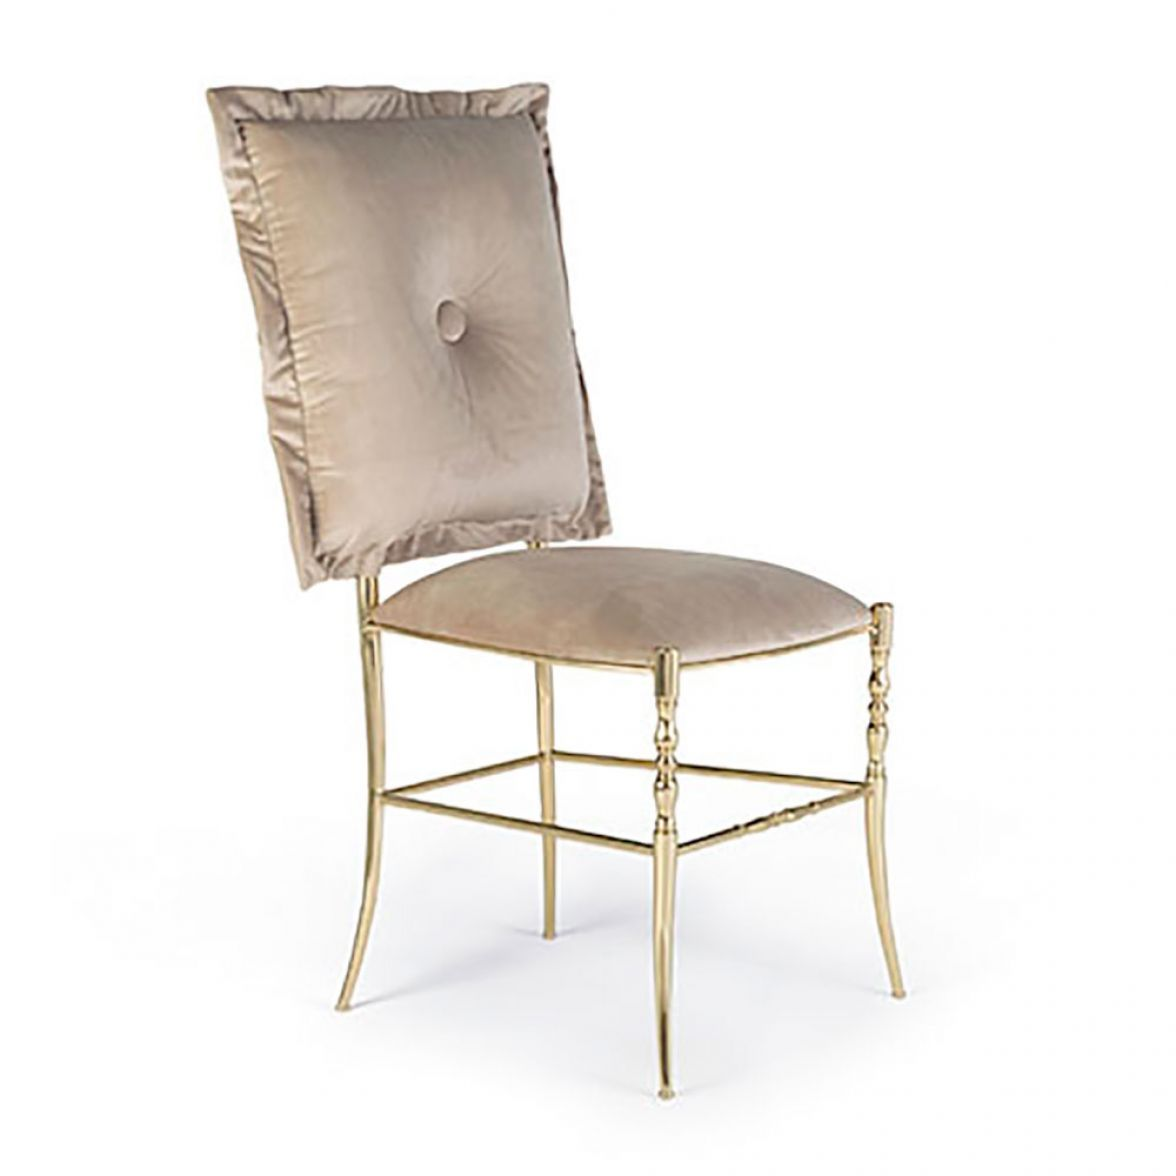 Chiavarina chair